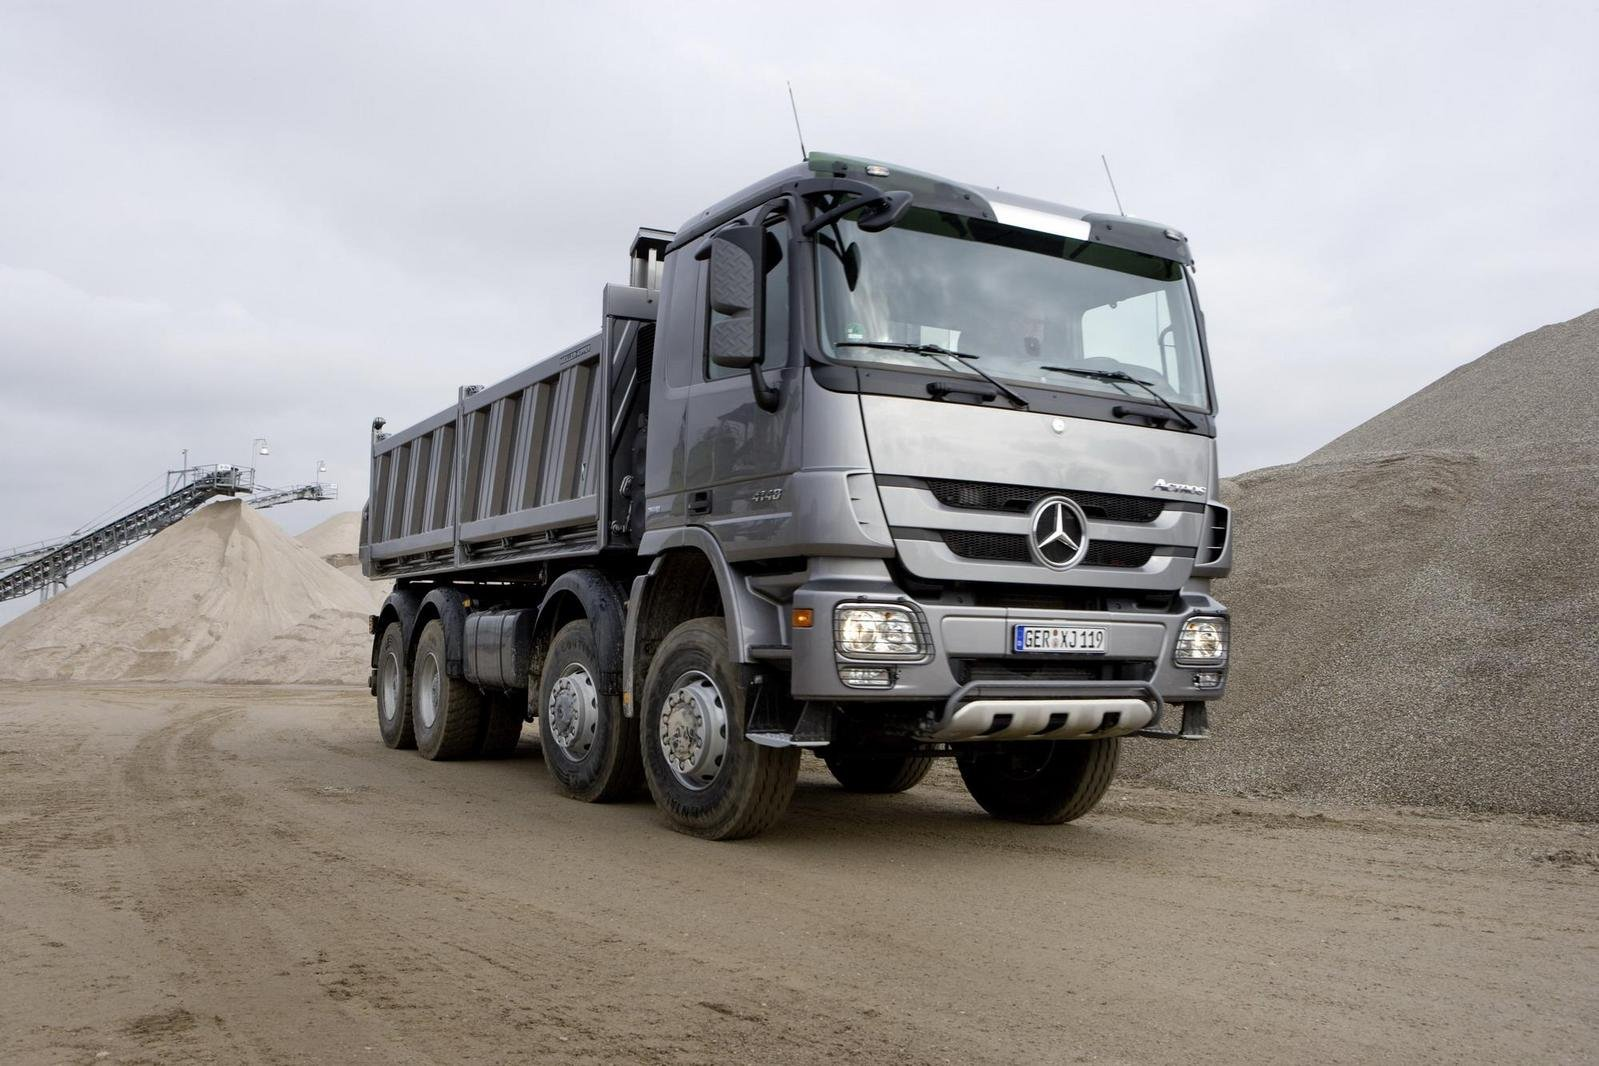 Gmc cab over engine gmc free engine image for user for Mercedes benz actros for sale